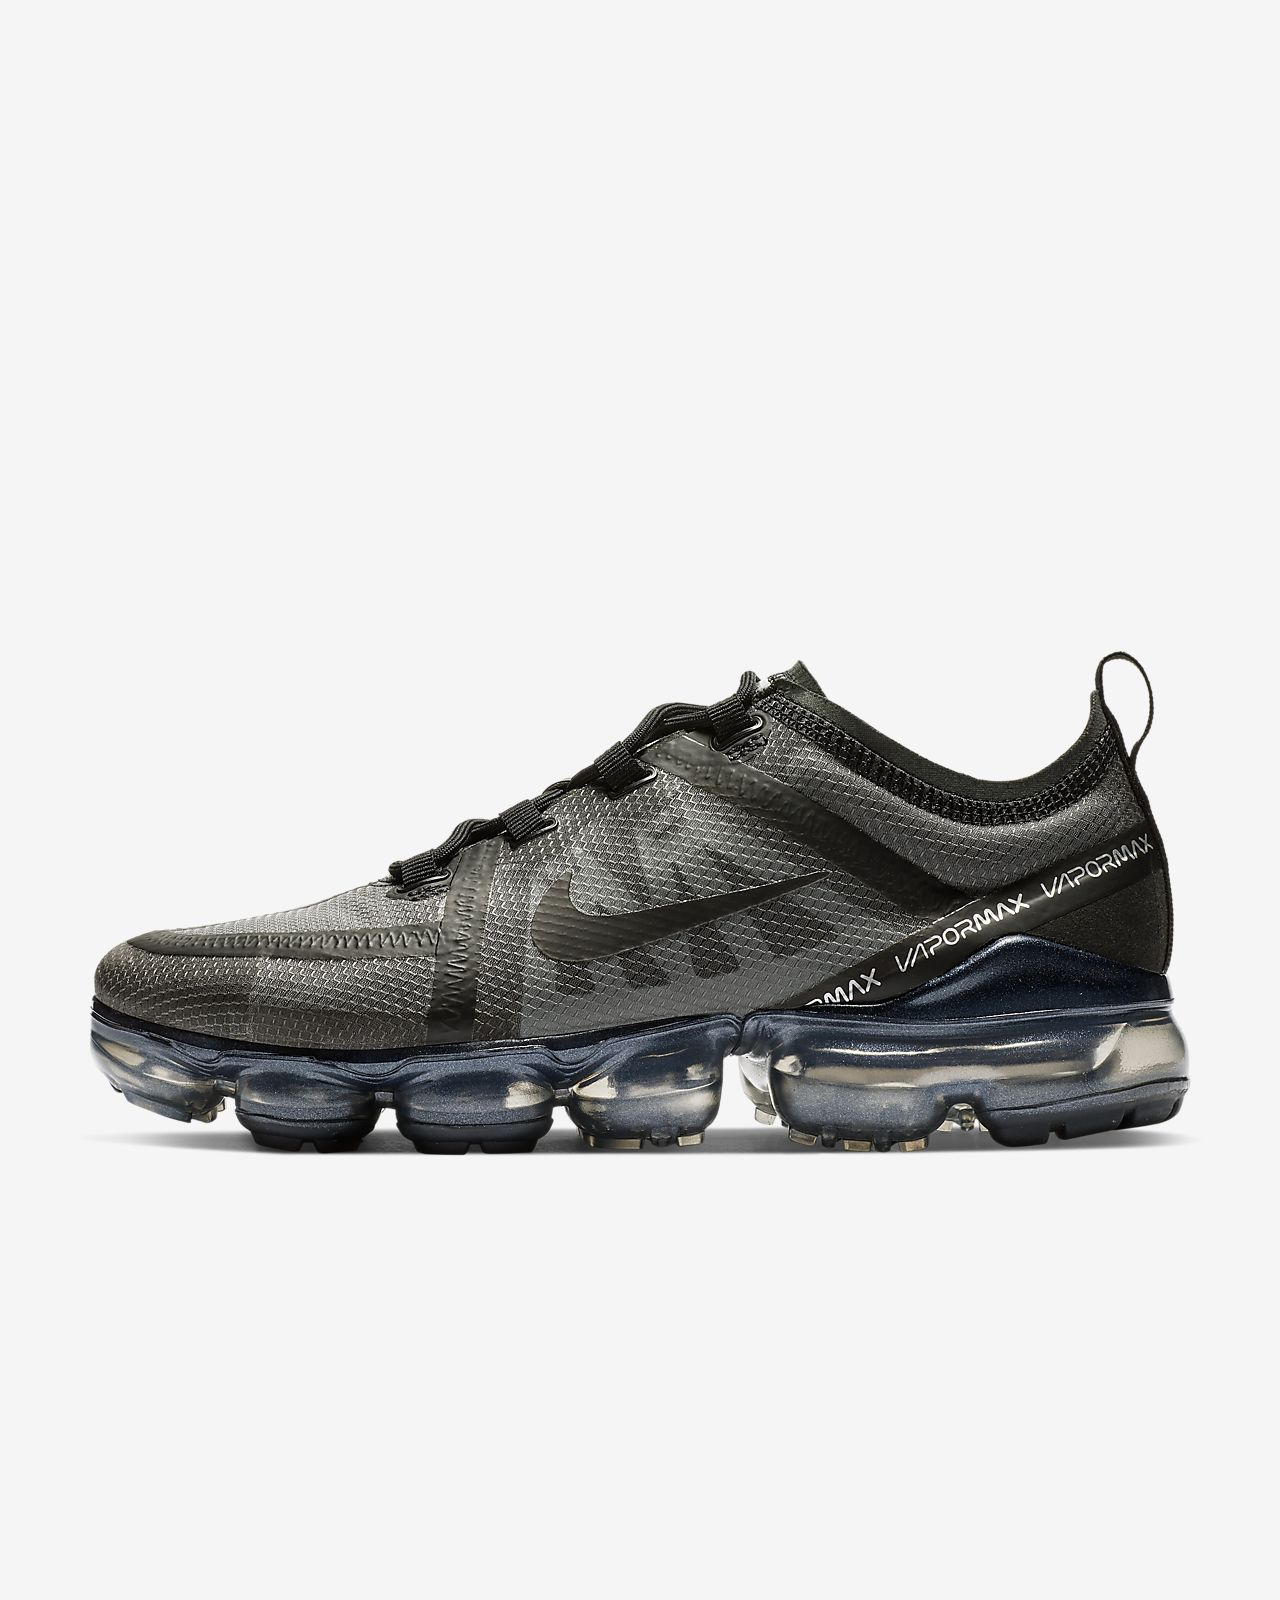 super popular c3c1a 85df7 Nike Air VaporMax 2019 Women's Shoe